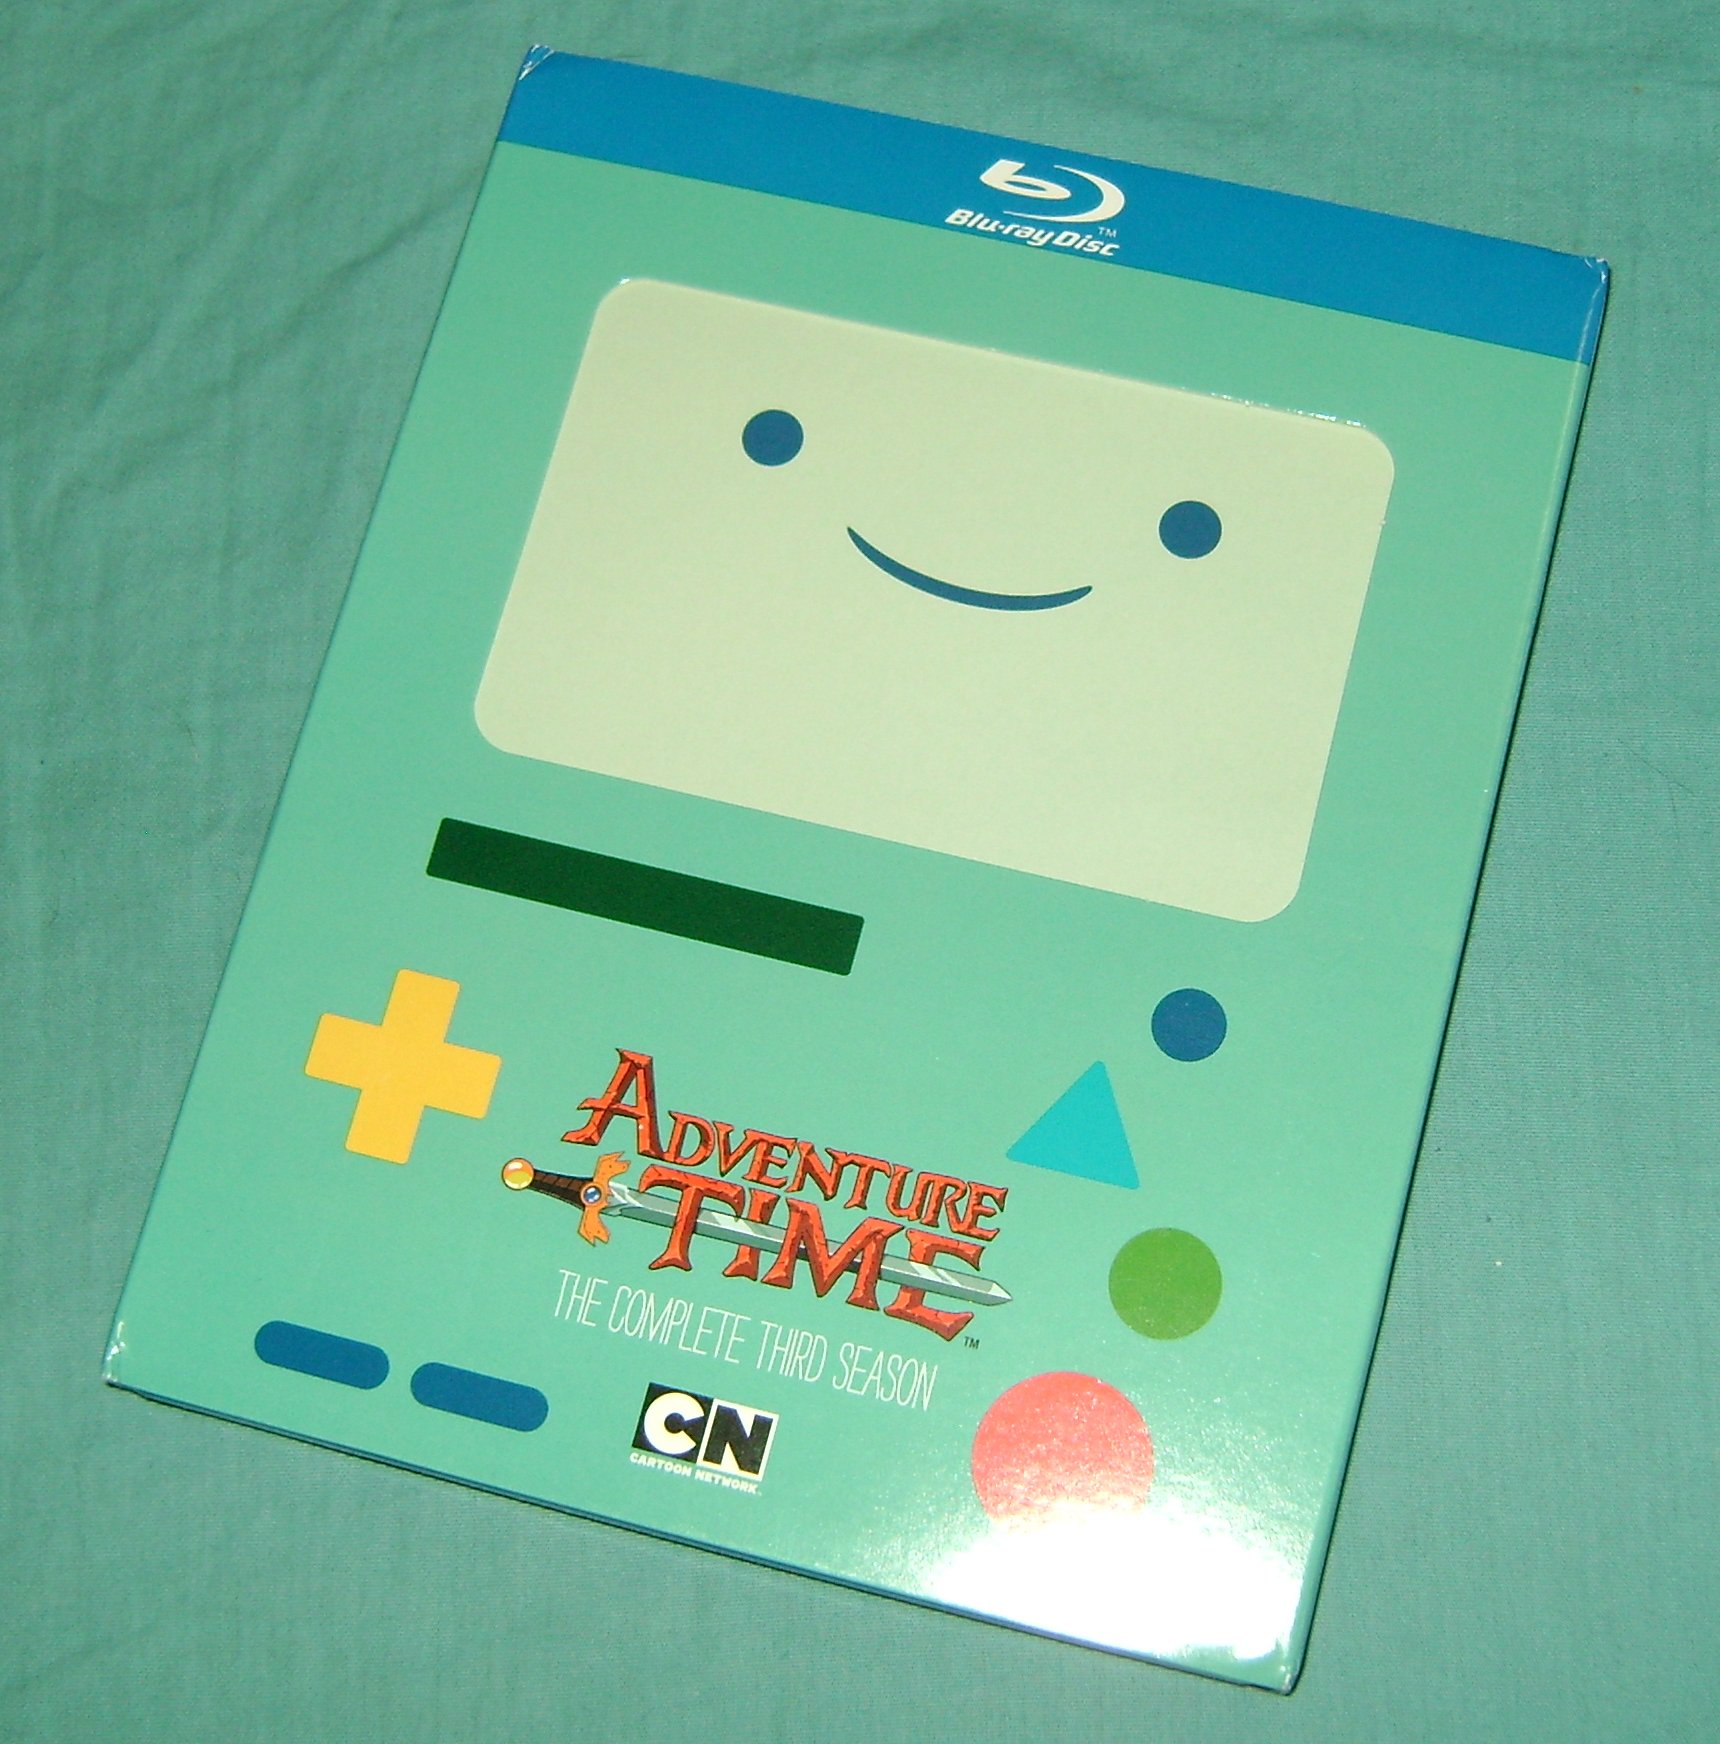 ADT1 Adventure Time: The Complete Third Season, Blu ray Review!